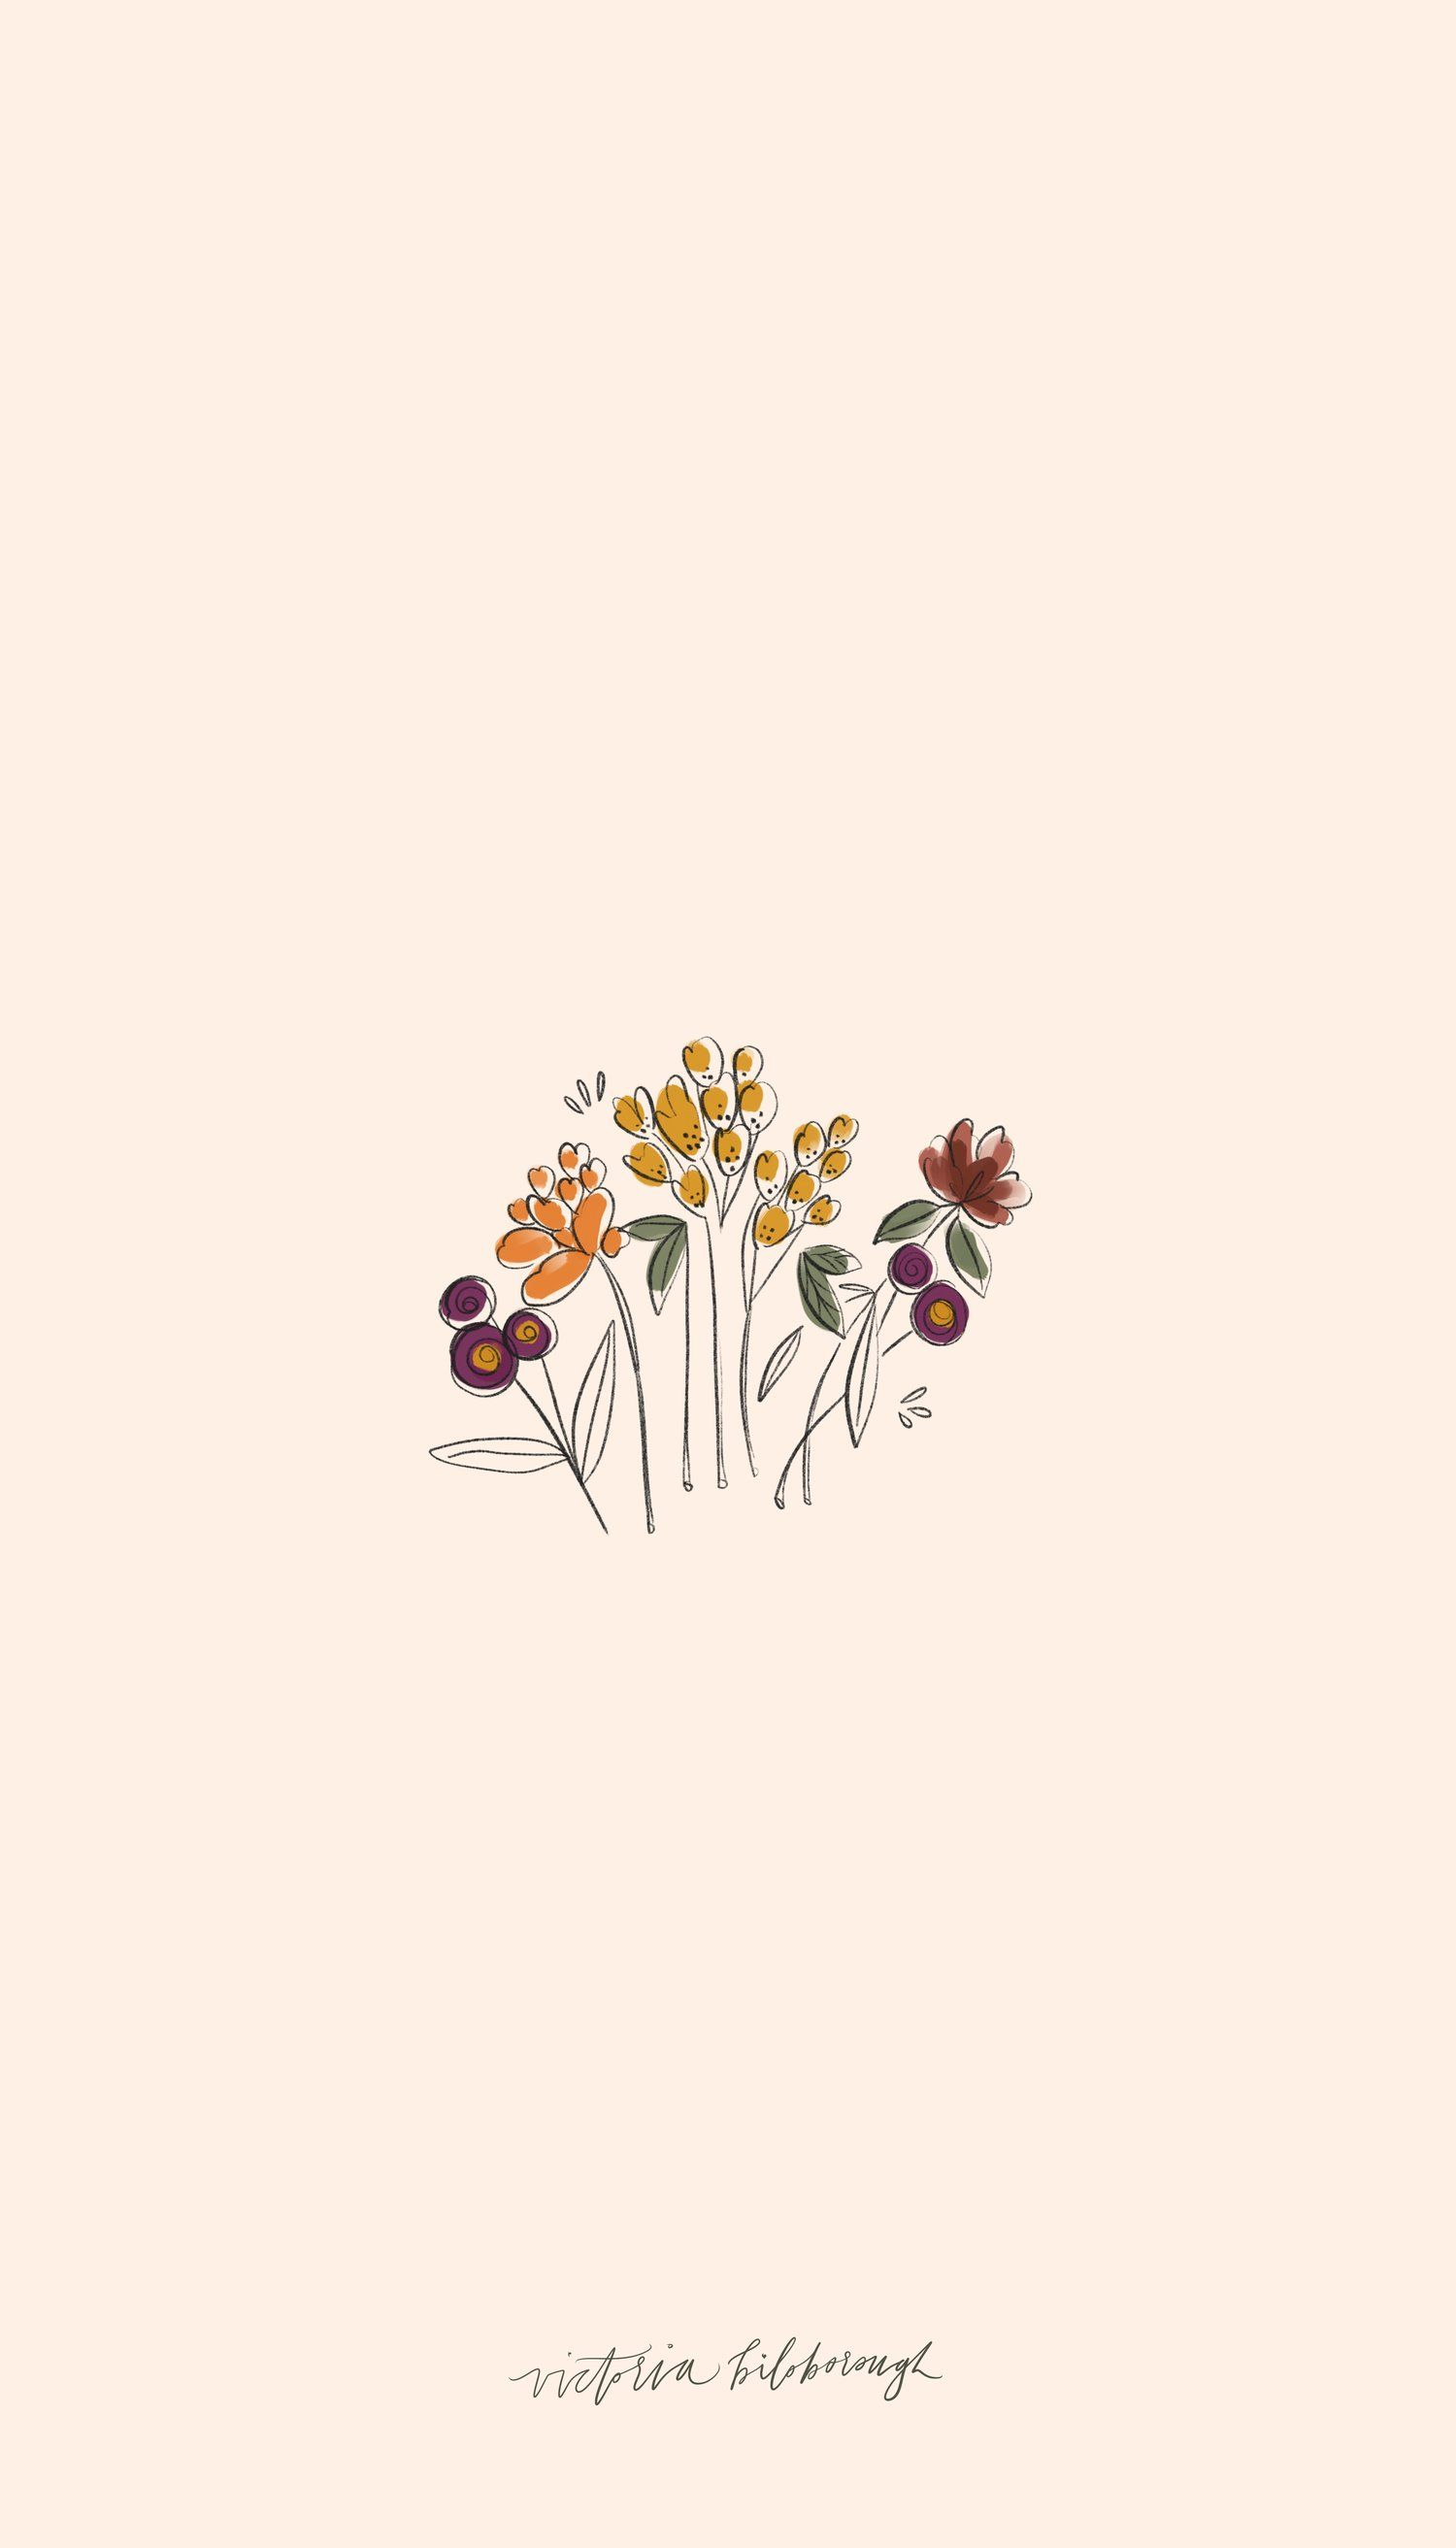 Pin By Brianna Hudock On Makes Me Smile In 2020 Minimalist Wallpaper Art Wallpaper Aesthetic Wallpapers